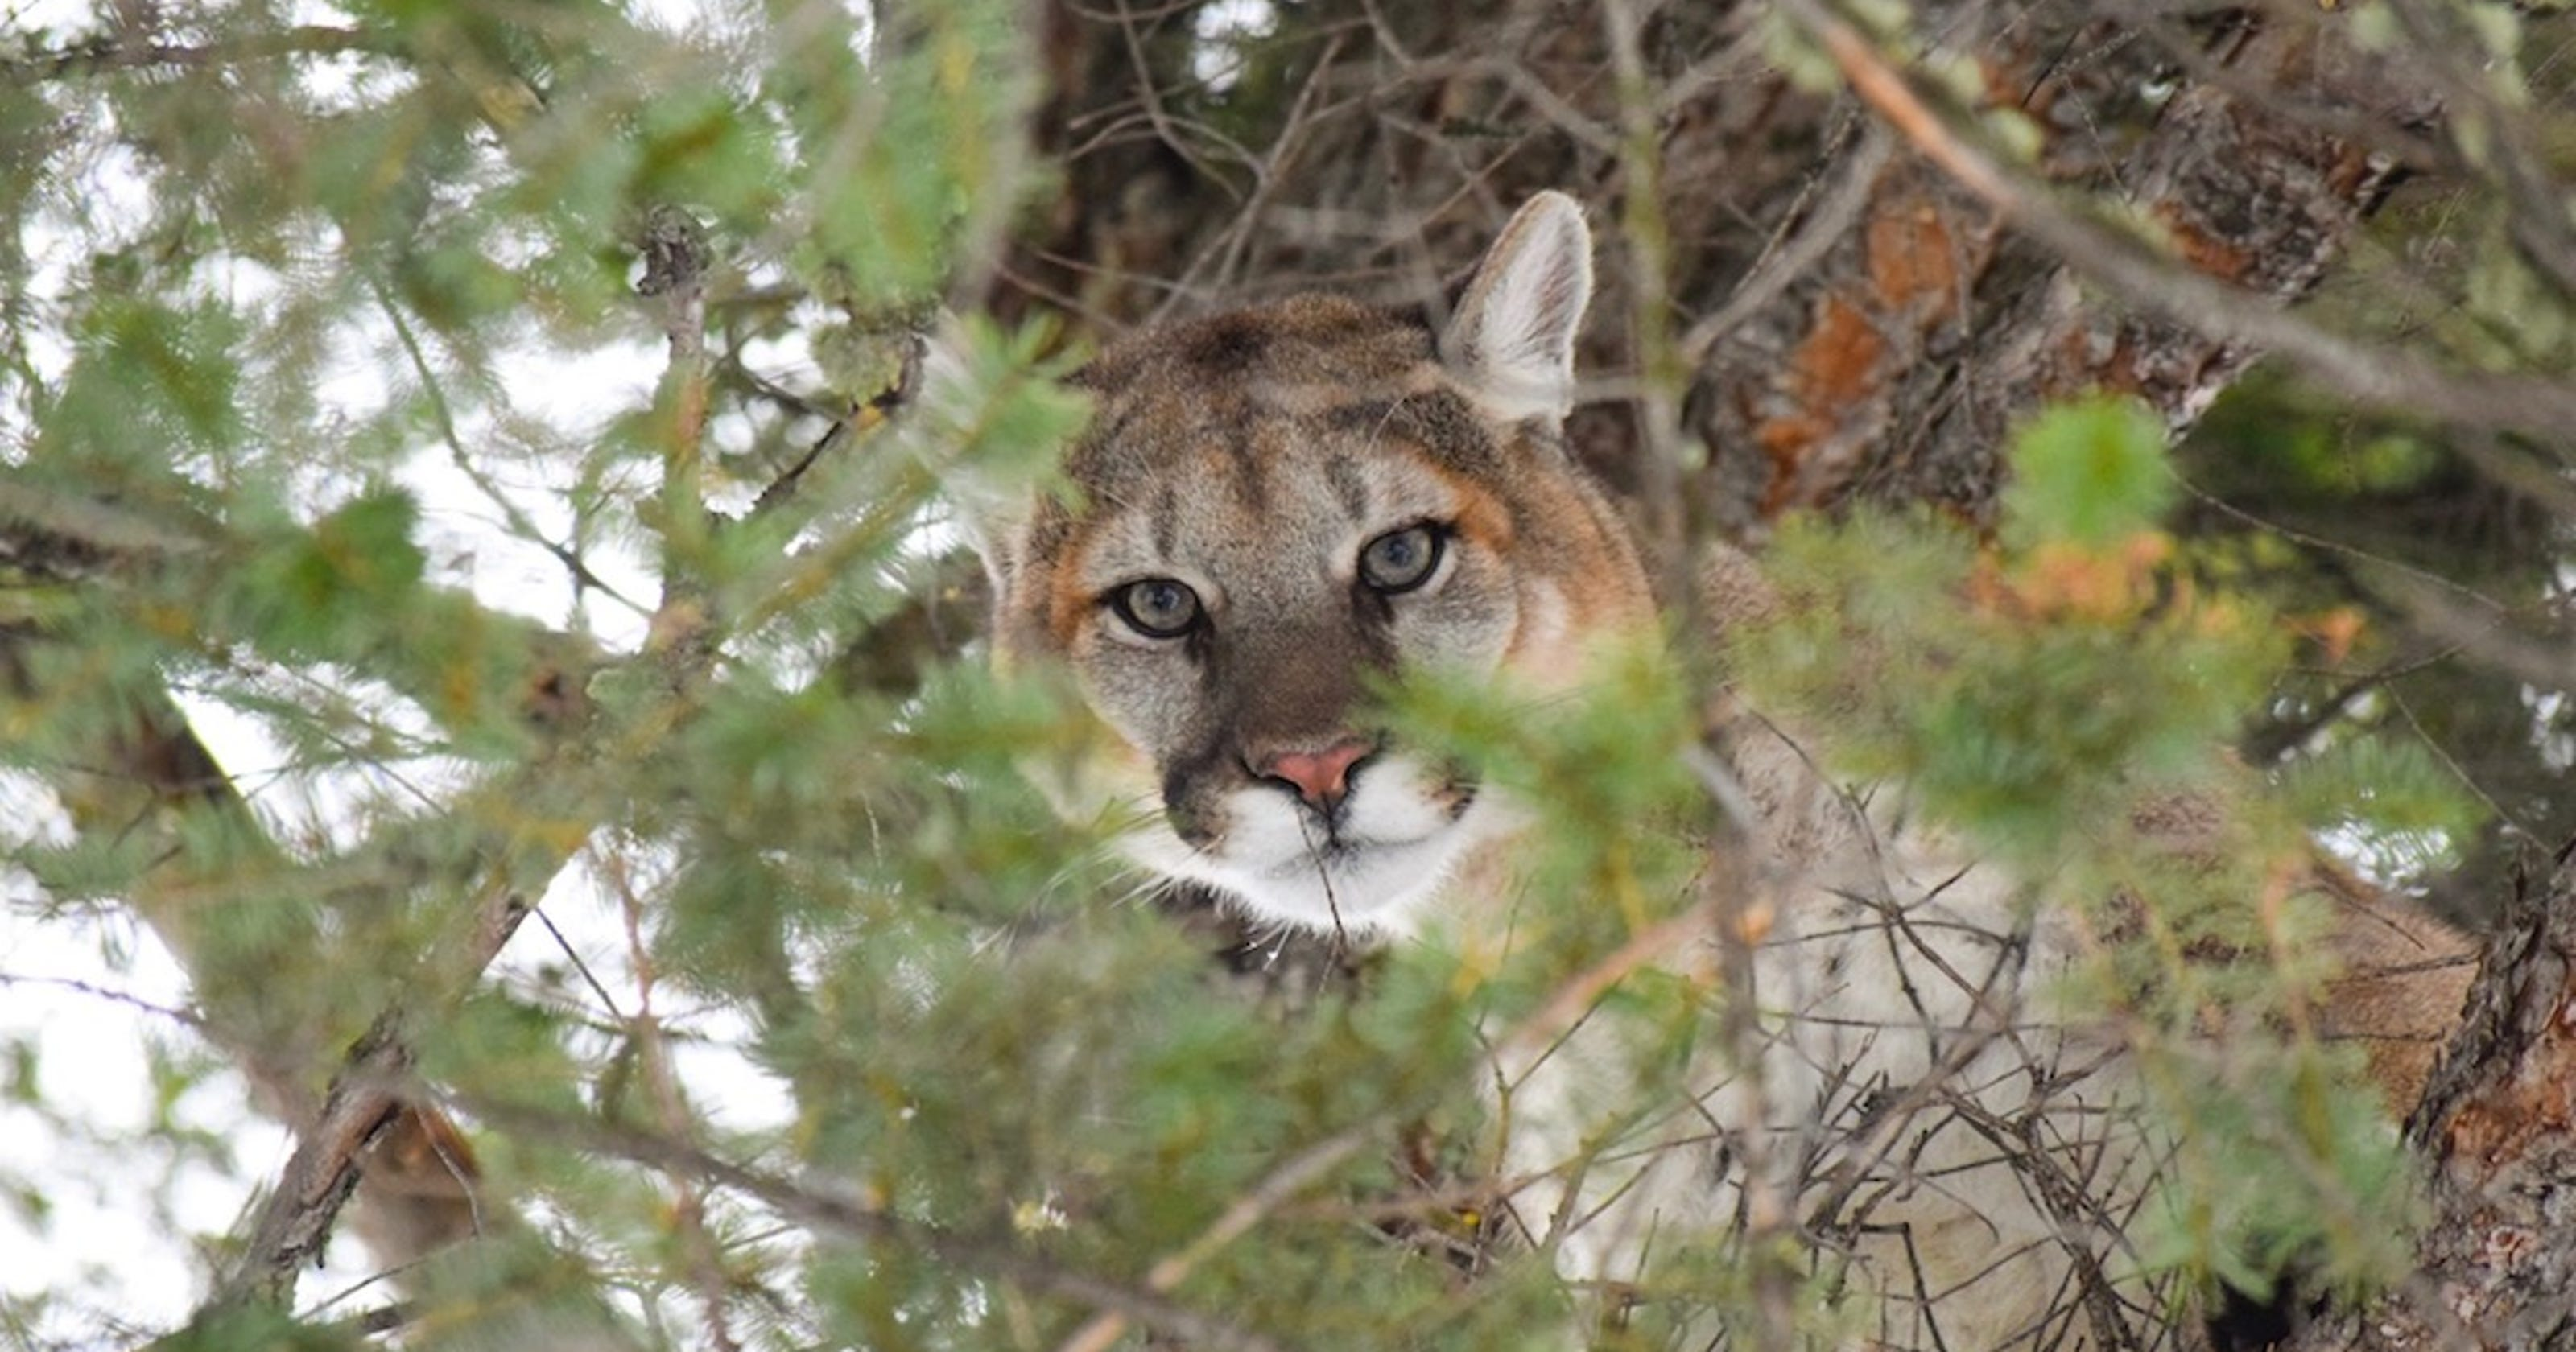 Reported sightings of big cats in NY rarely see physical evidence